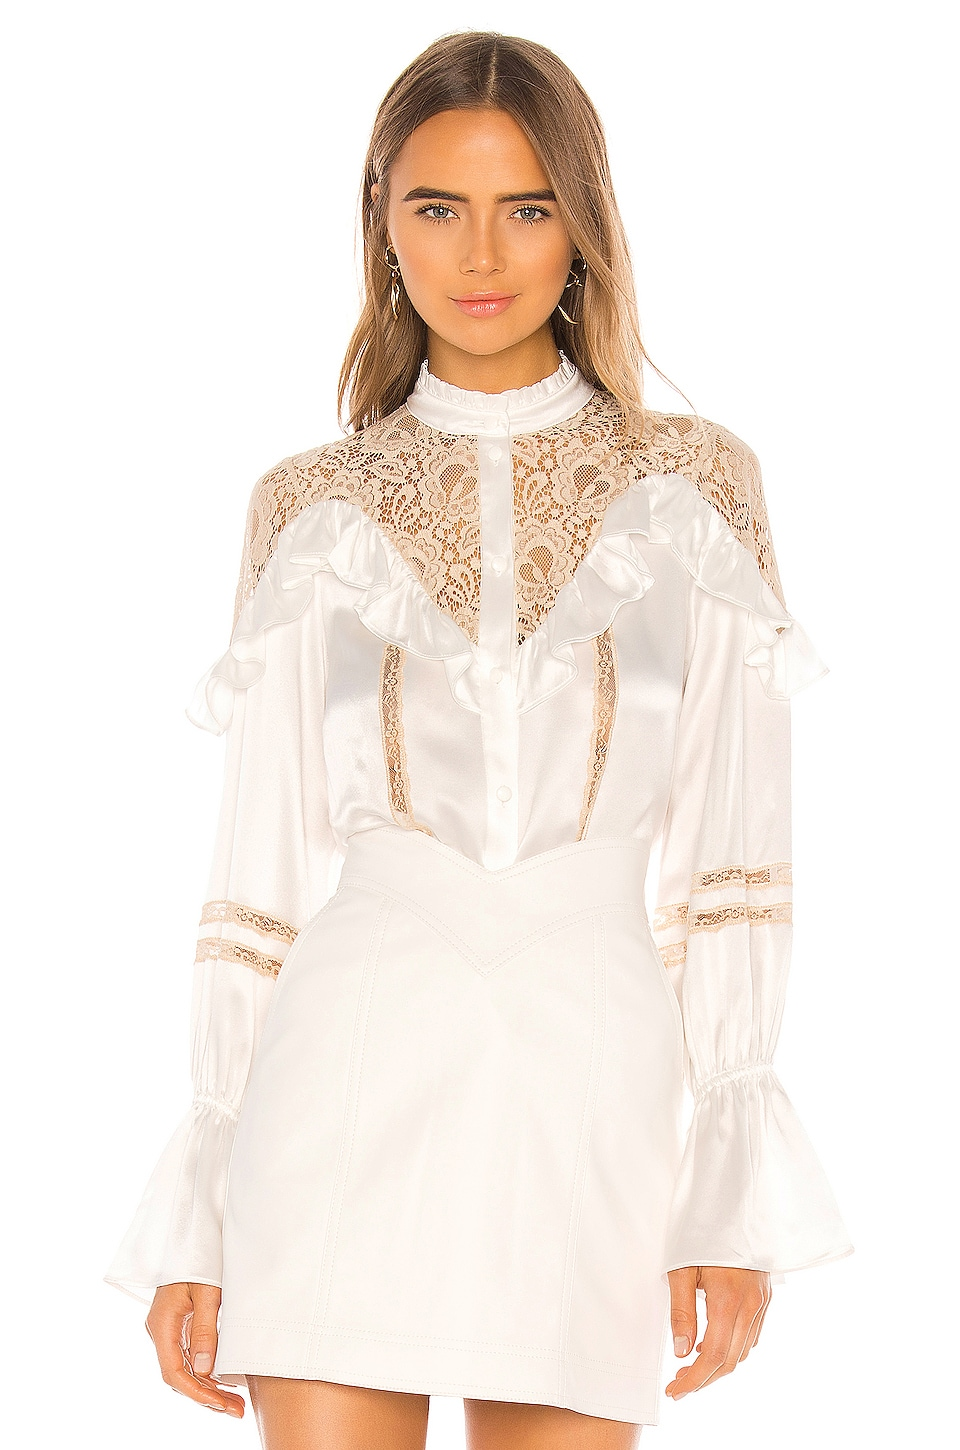 Divine Heritage Lace Inset Blouse in Ivory & Tea Stain Lace